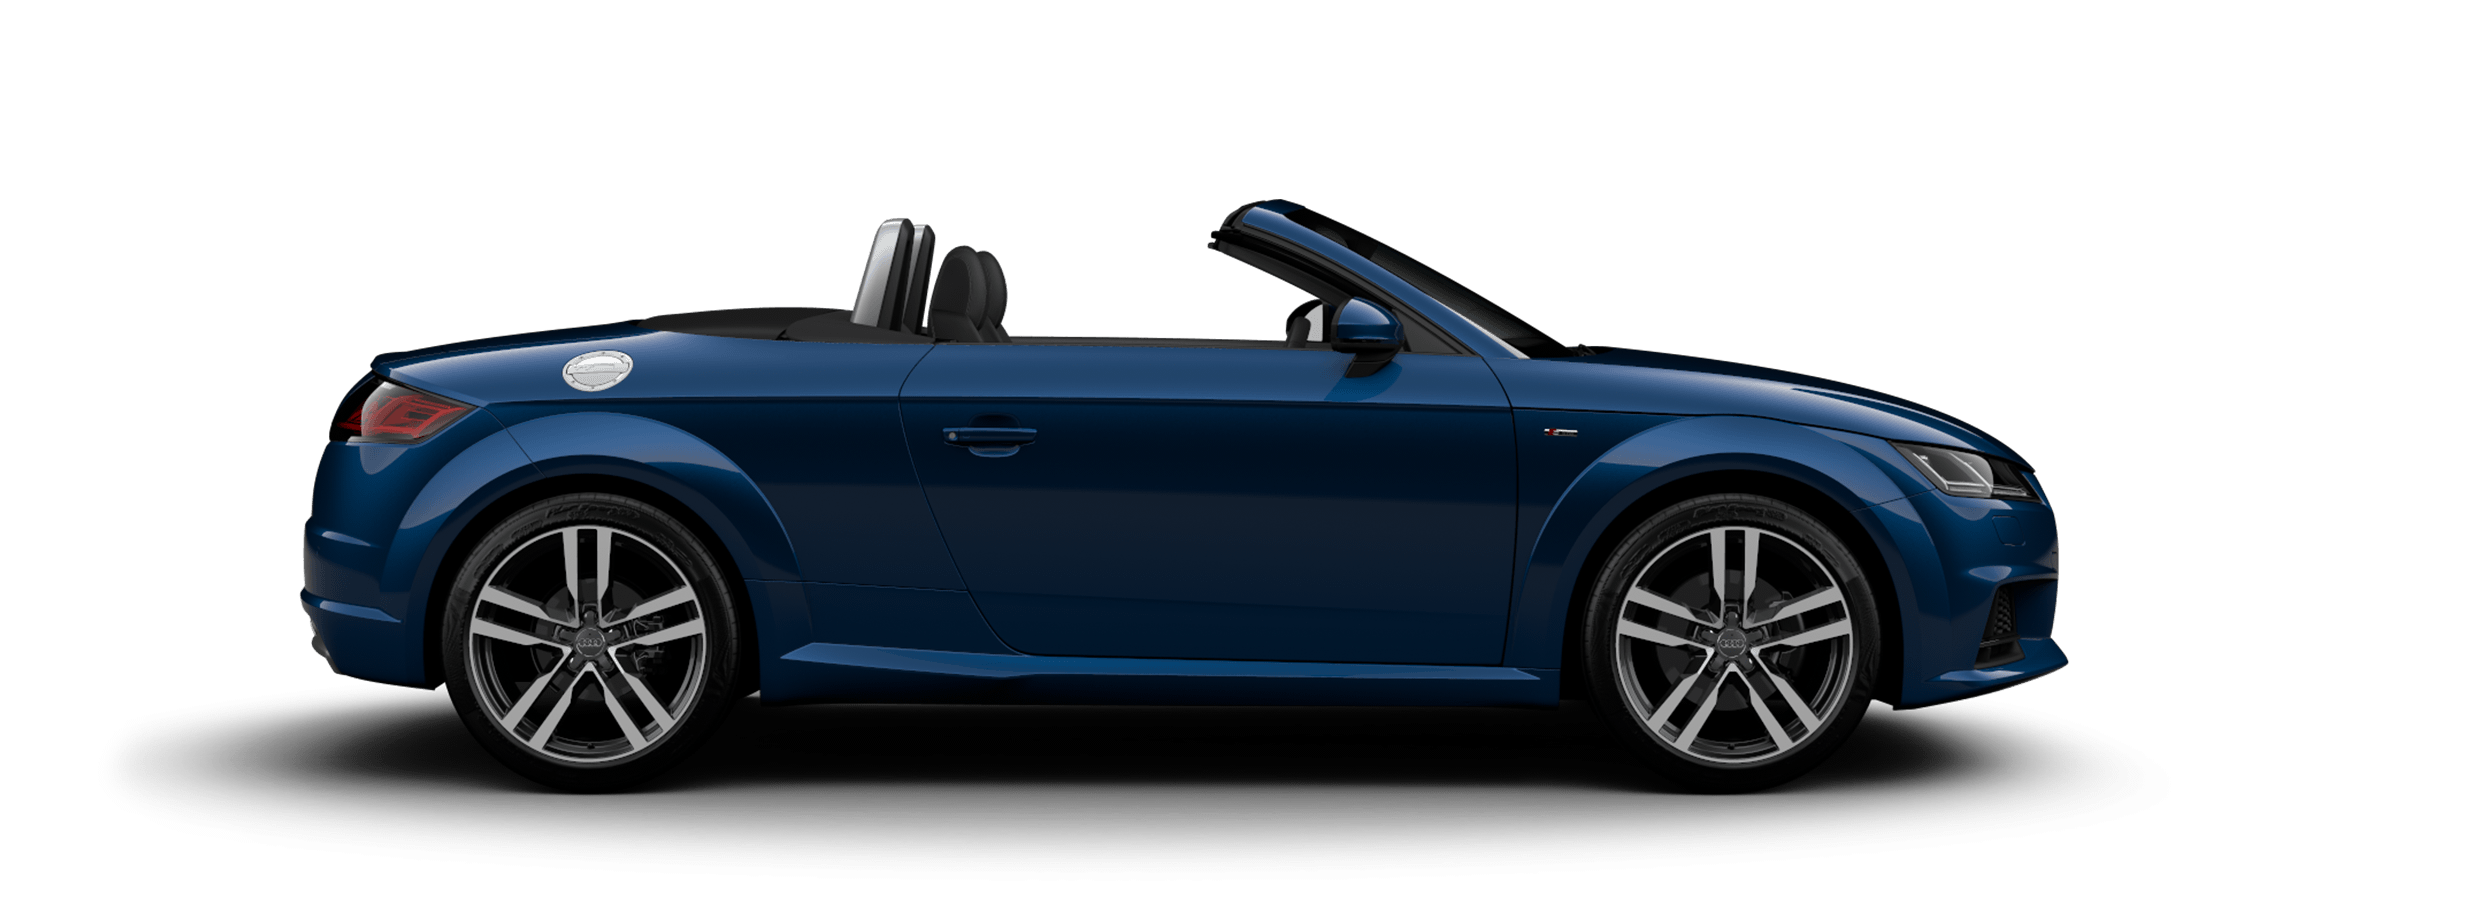 https://bluesky-cogcms.cdn.imgeng.in/media/62394/tt-roadster.png